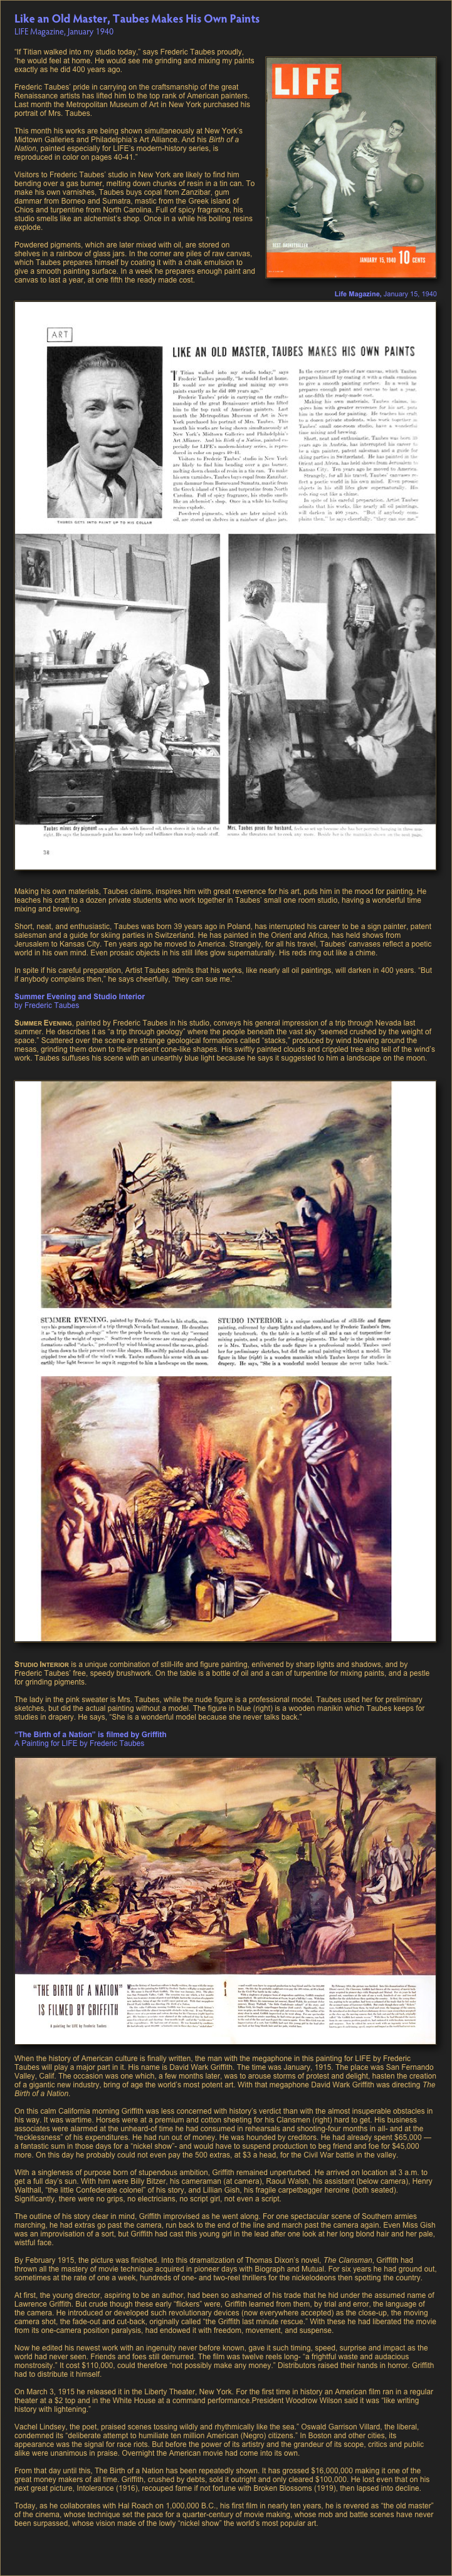 Like an Old Master, Taubes Makes His Own Paints